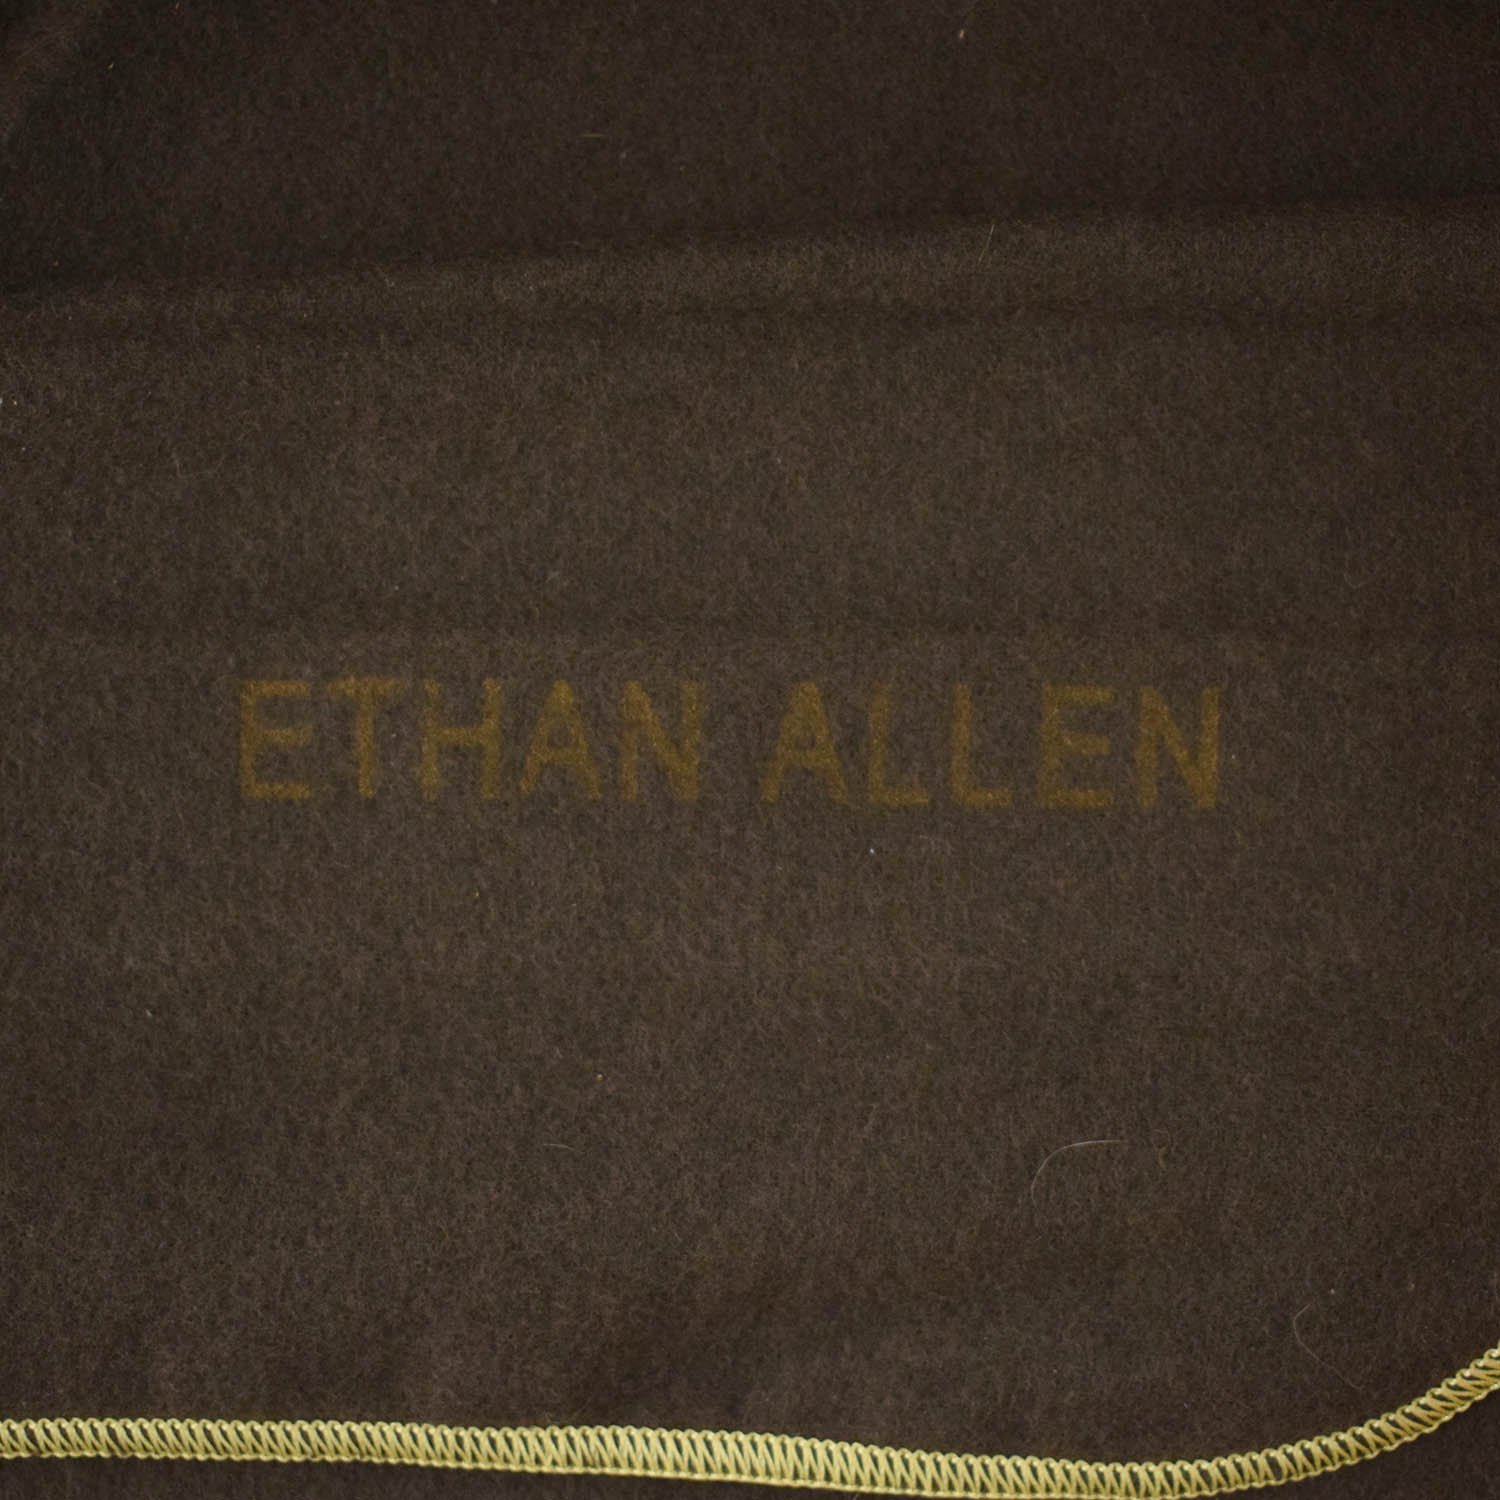 buy Ethan Allen Goodwin Dining Table Ethan Allen Dinner Tables